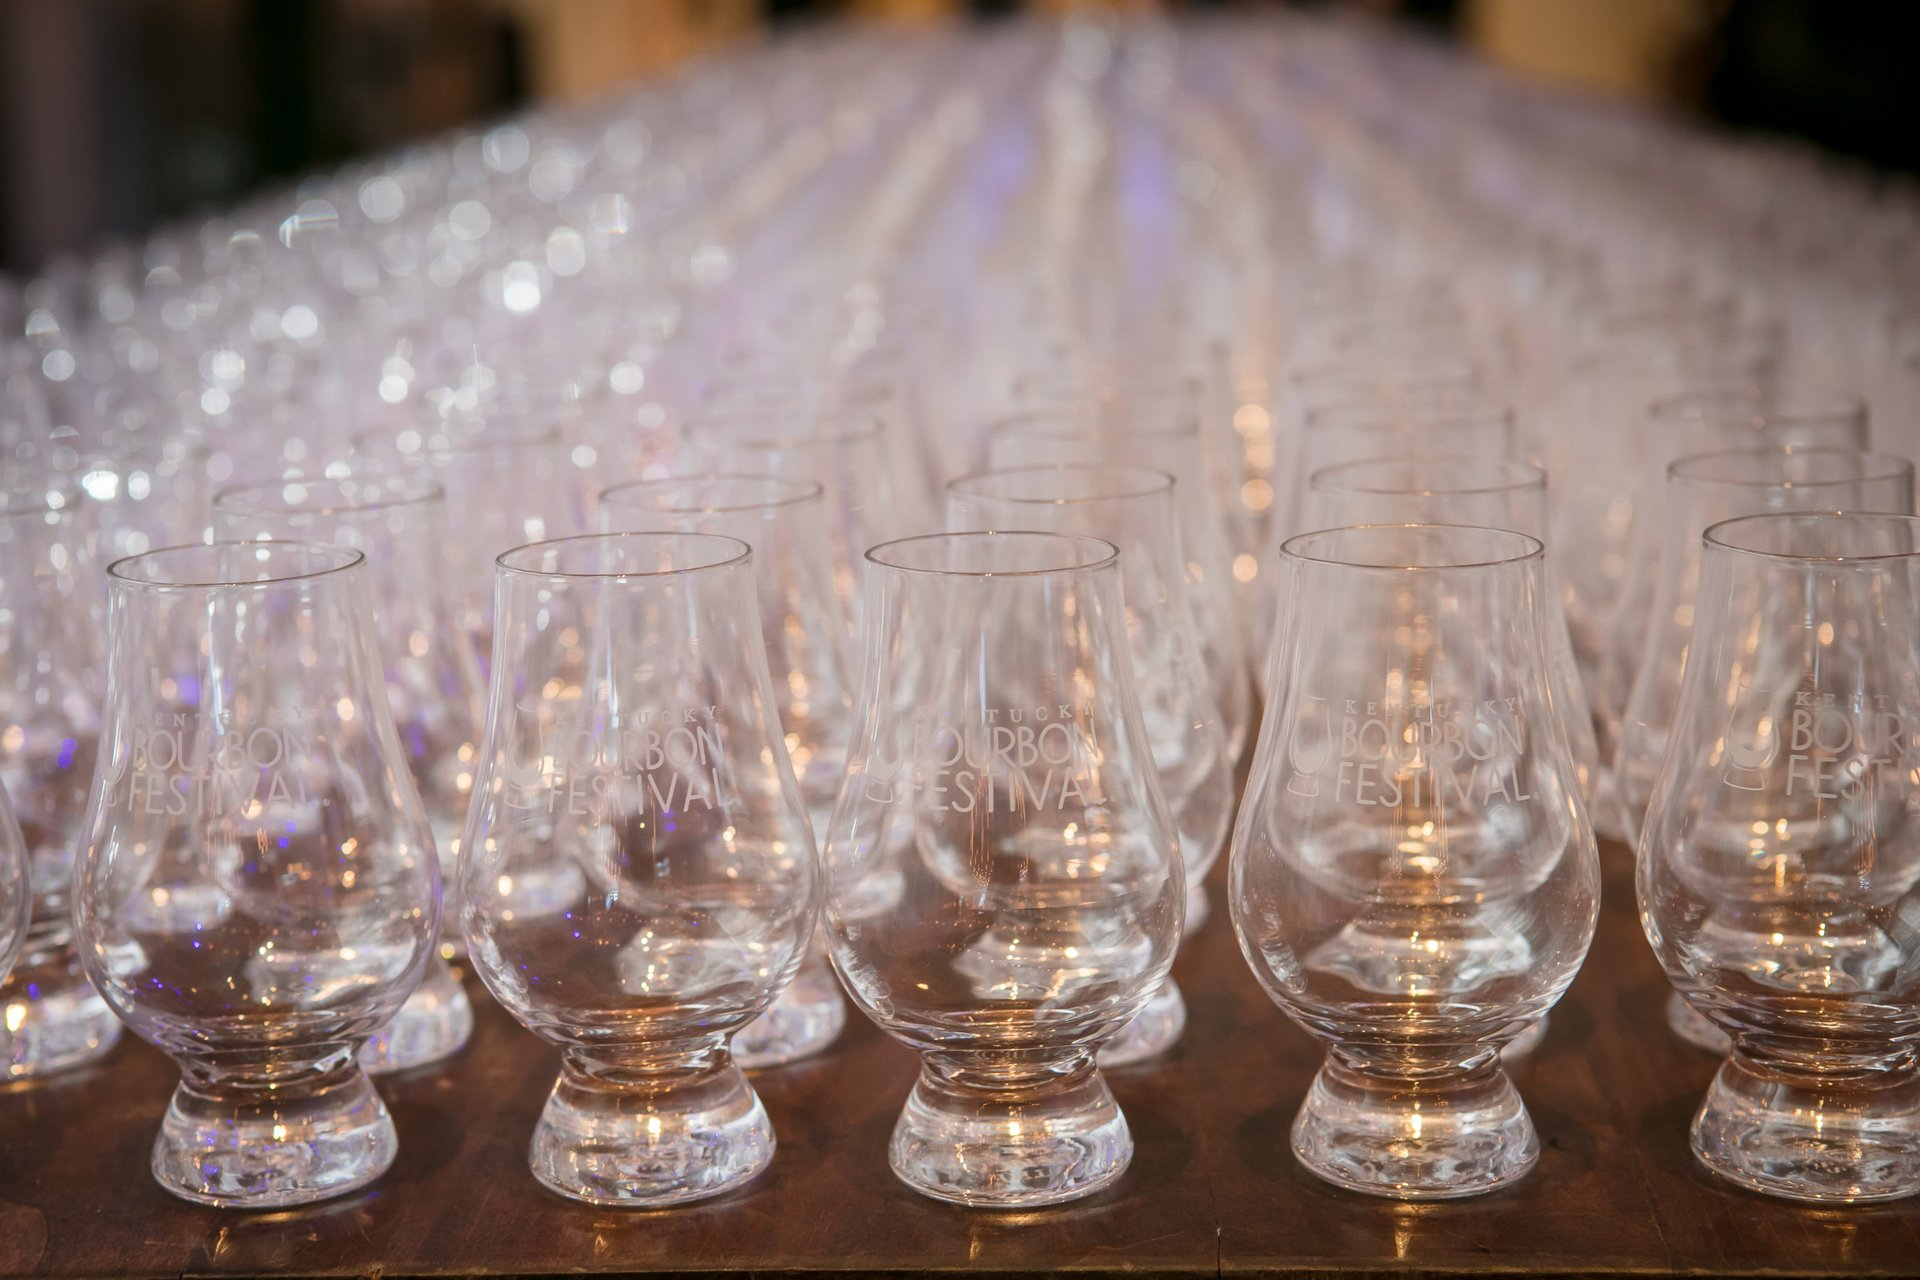 Best time to see Kentucky Bourbon Festival 2020